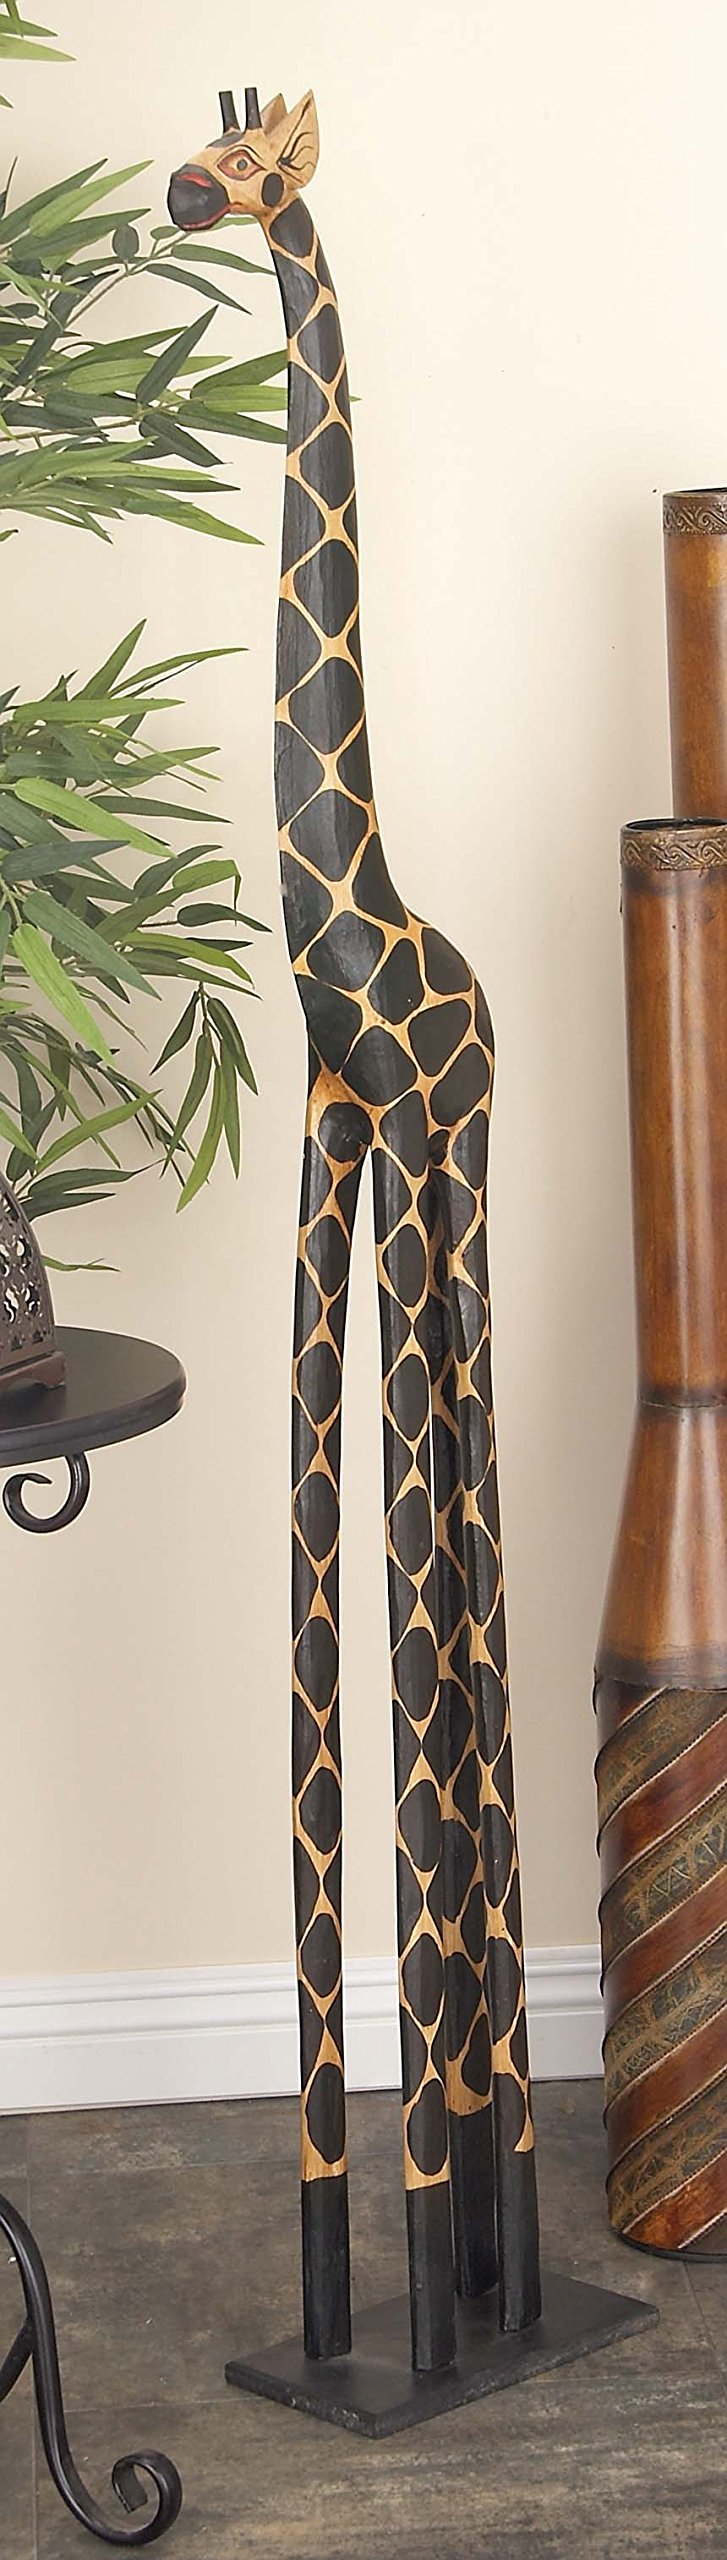 Deco 79 Wood Giraffe, 79 by 12-Inch by Deco 79 (Image #1)